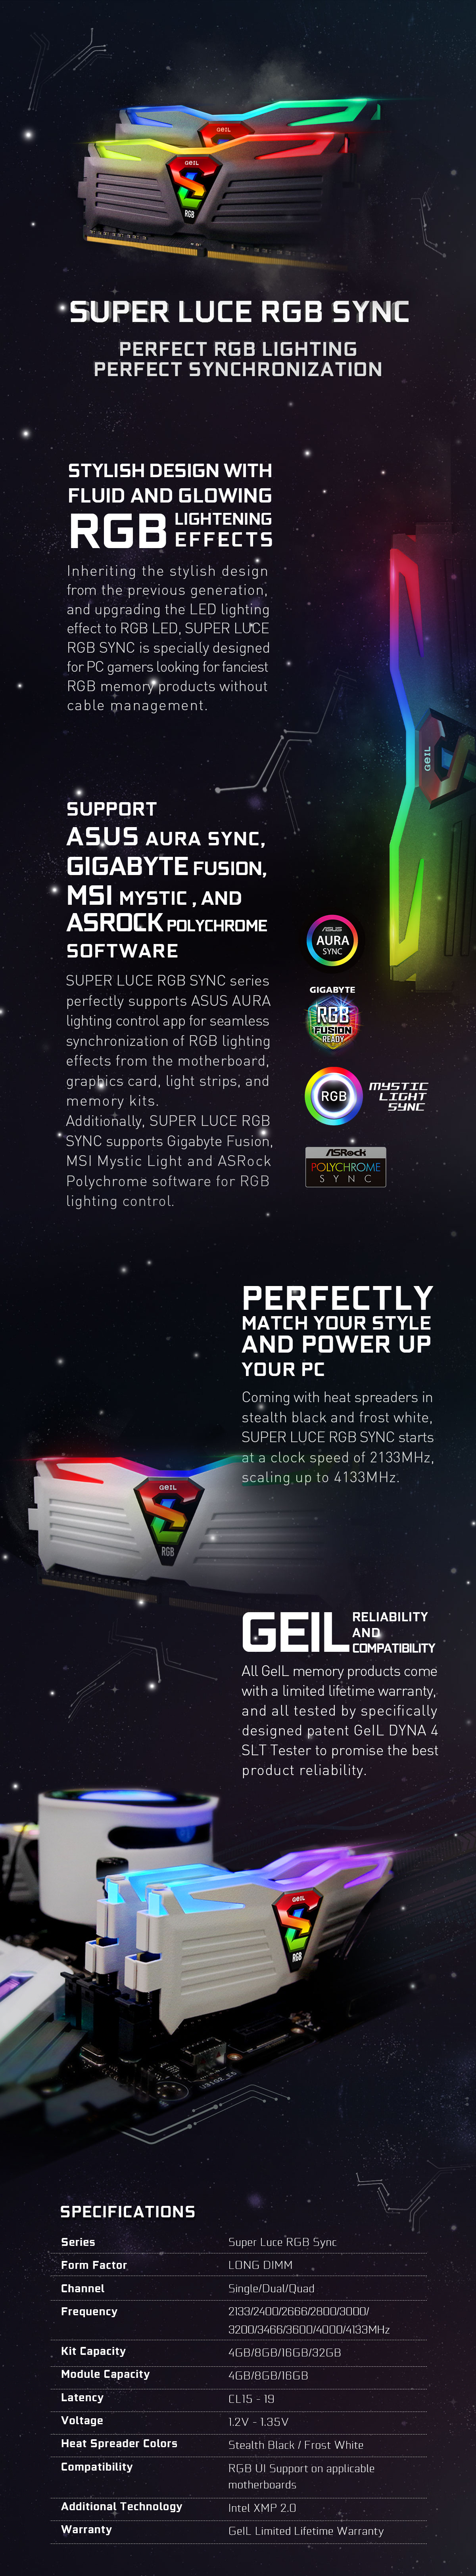 A large marketing image providing additional information about the product GeIL 32GB Kit (2x16GB) DDR4 SUPER LUCE RGB SYNC C16 3000MHz - Additional alt info not provided